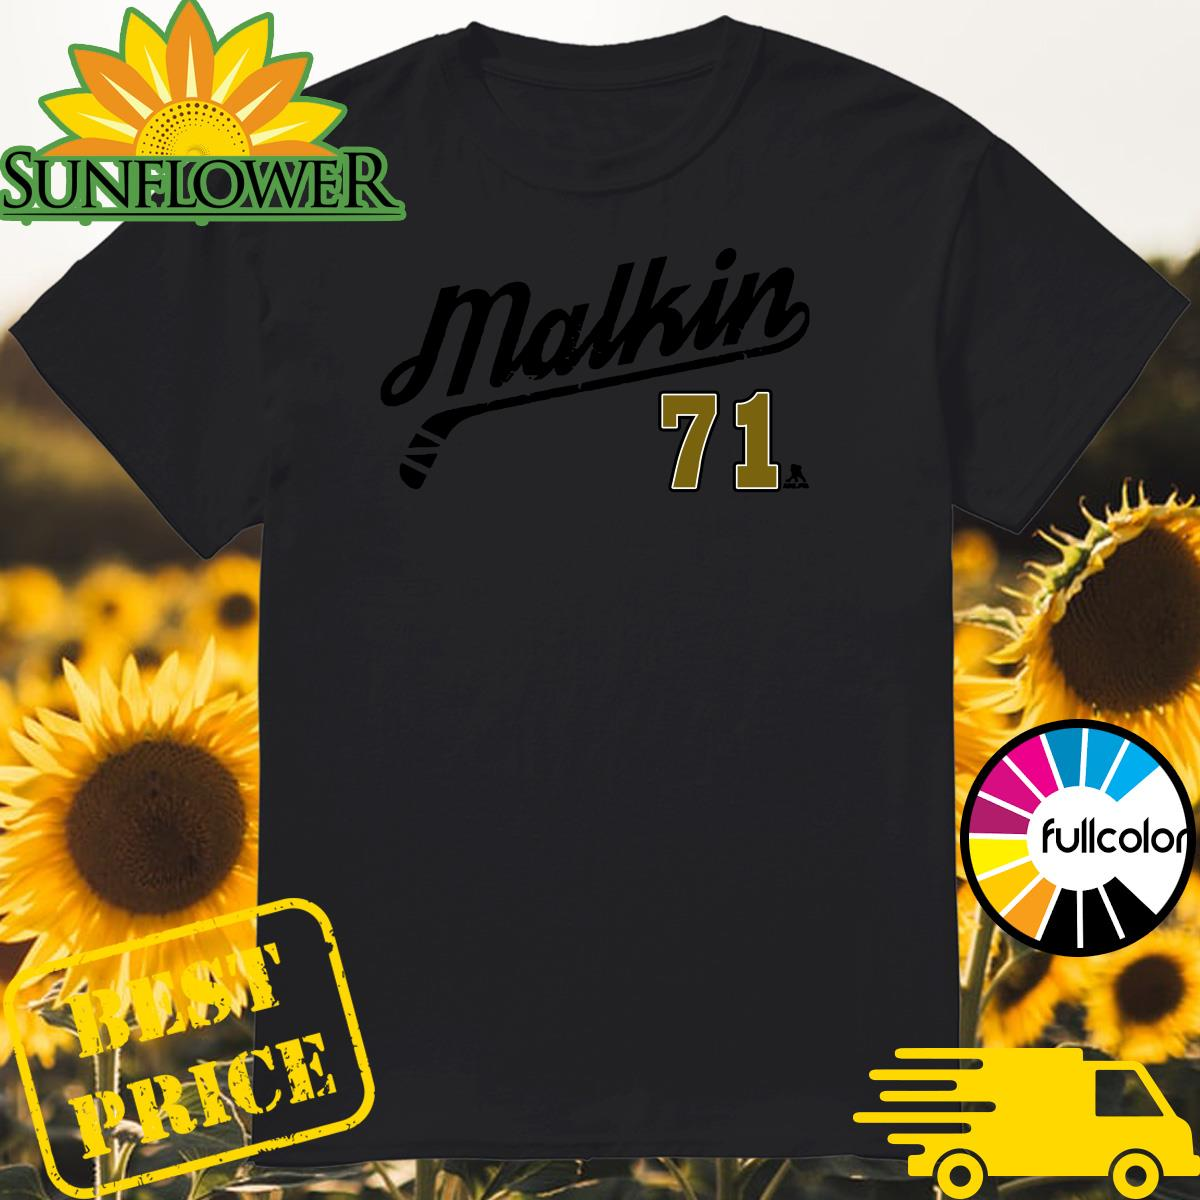 The Evgeni Malkin 71 Number Tee Shirt